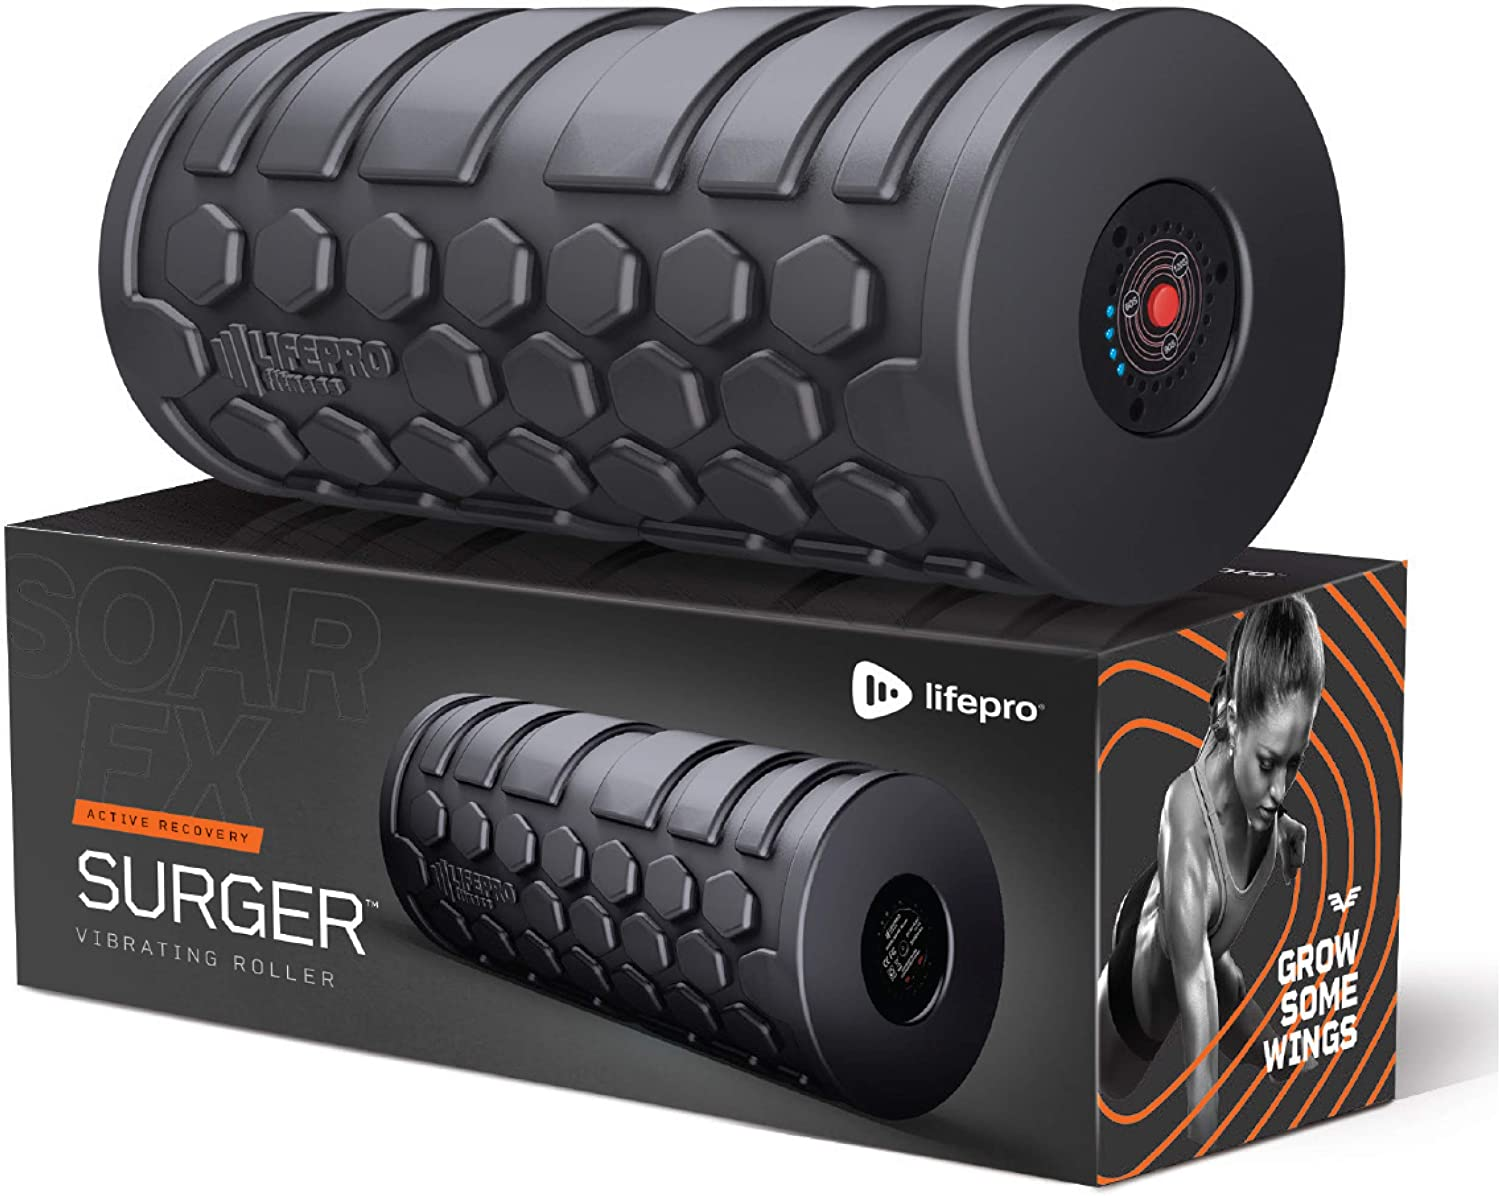 Lifepro Comes With 4-Speed Vibration For Foam Roller Back Stretches